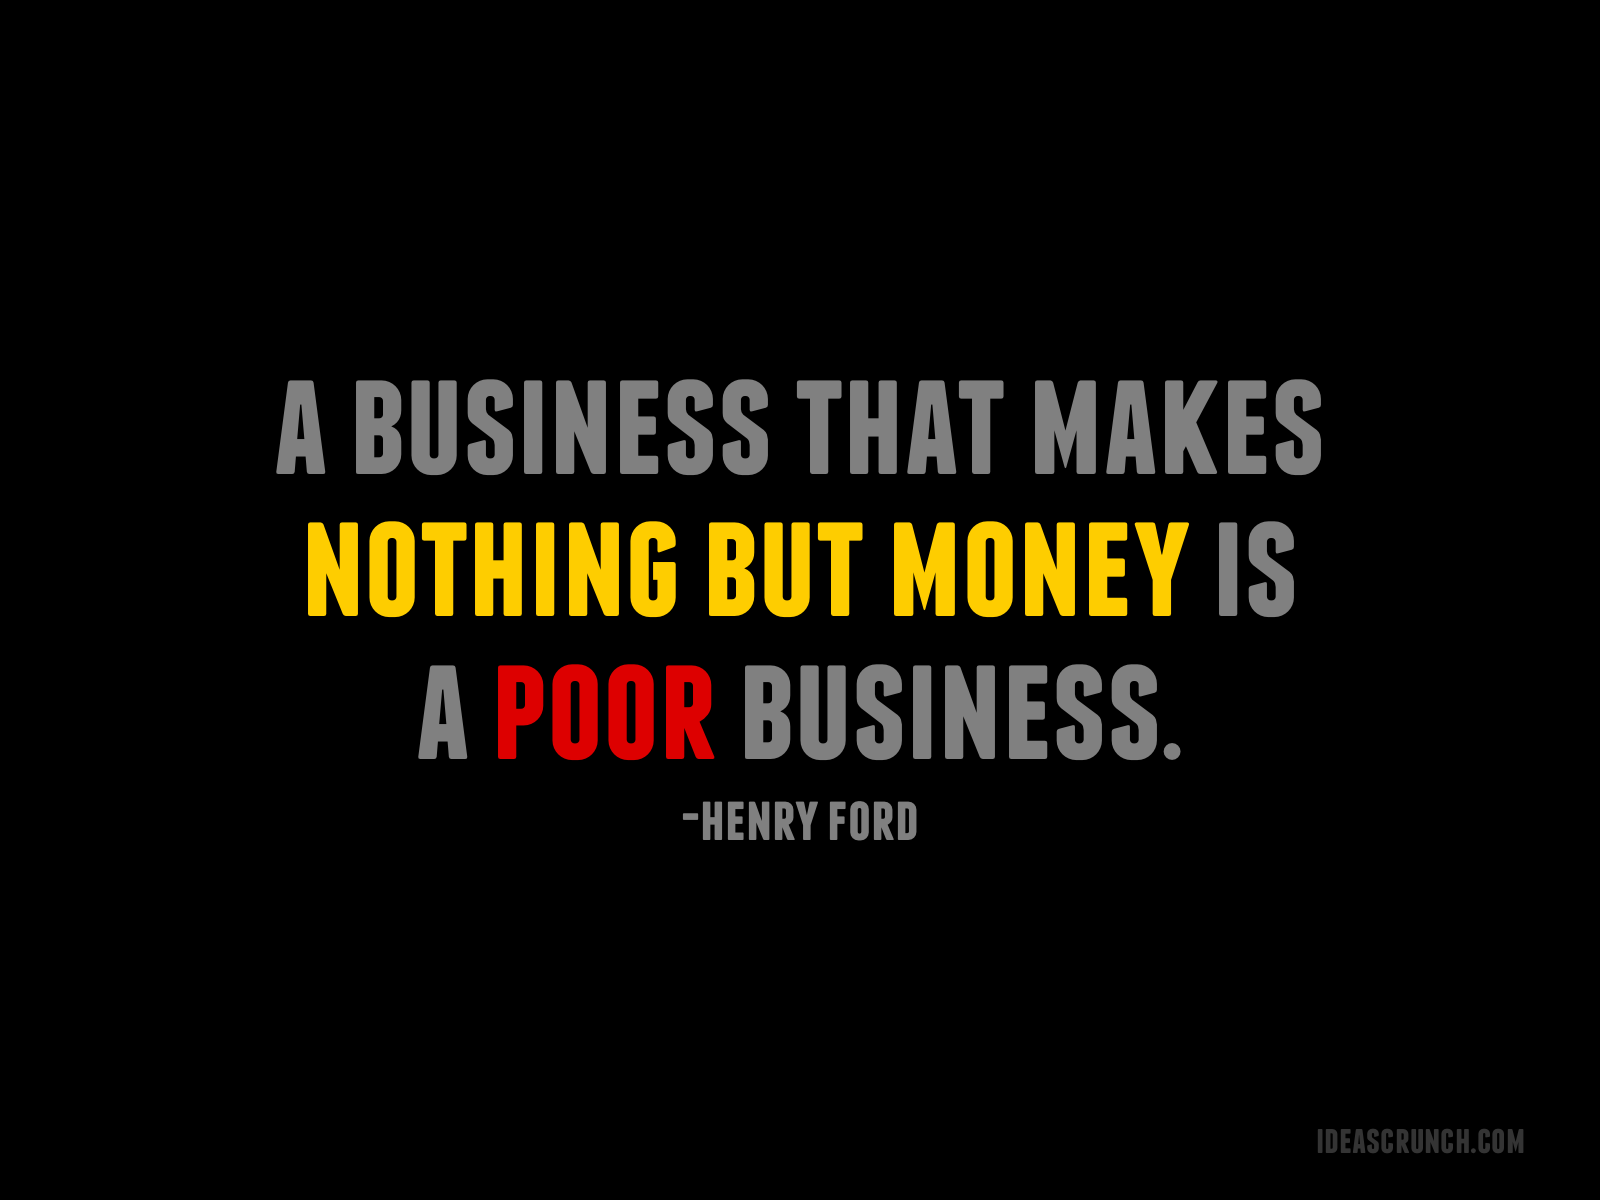 Business Quotes: Quality Quotes For Business. QuotesGram